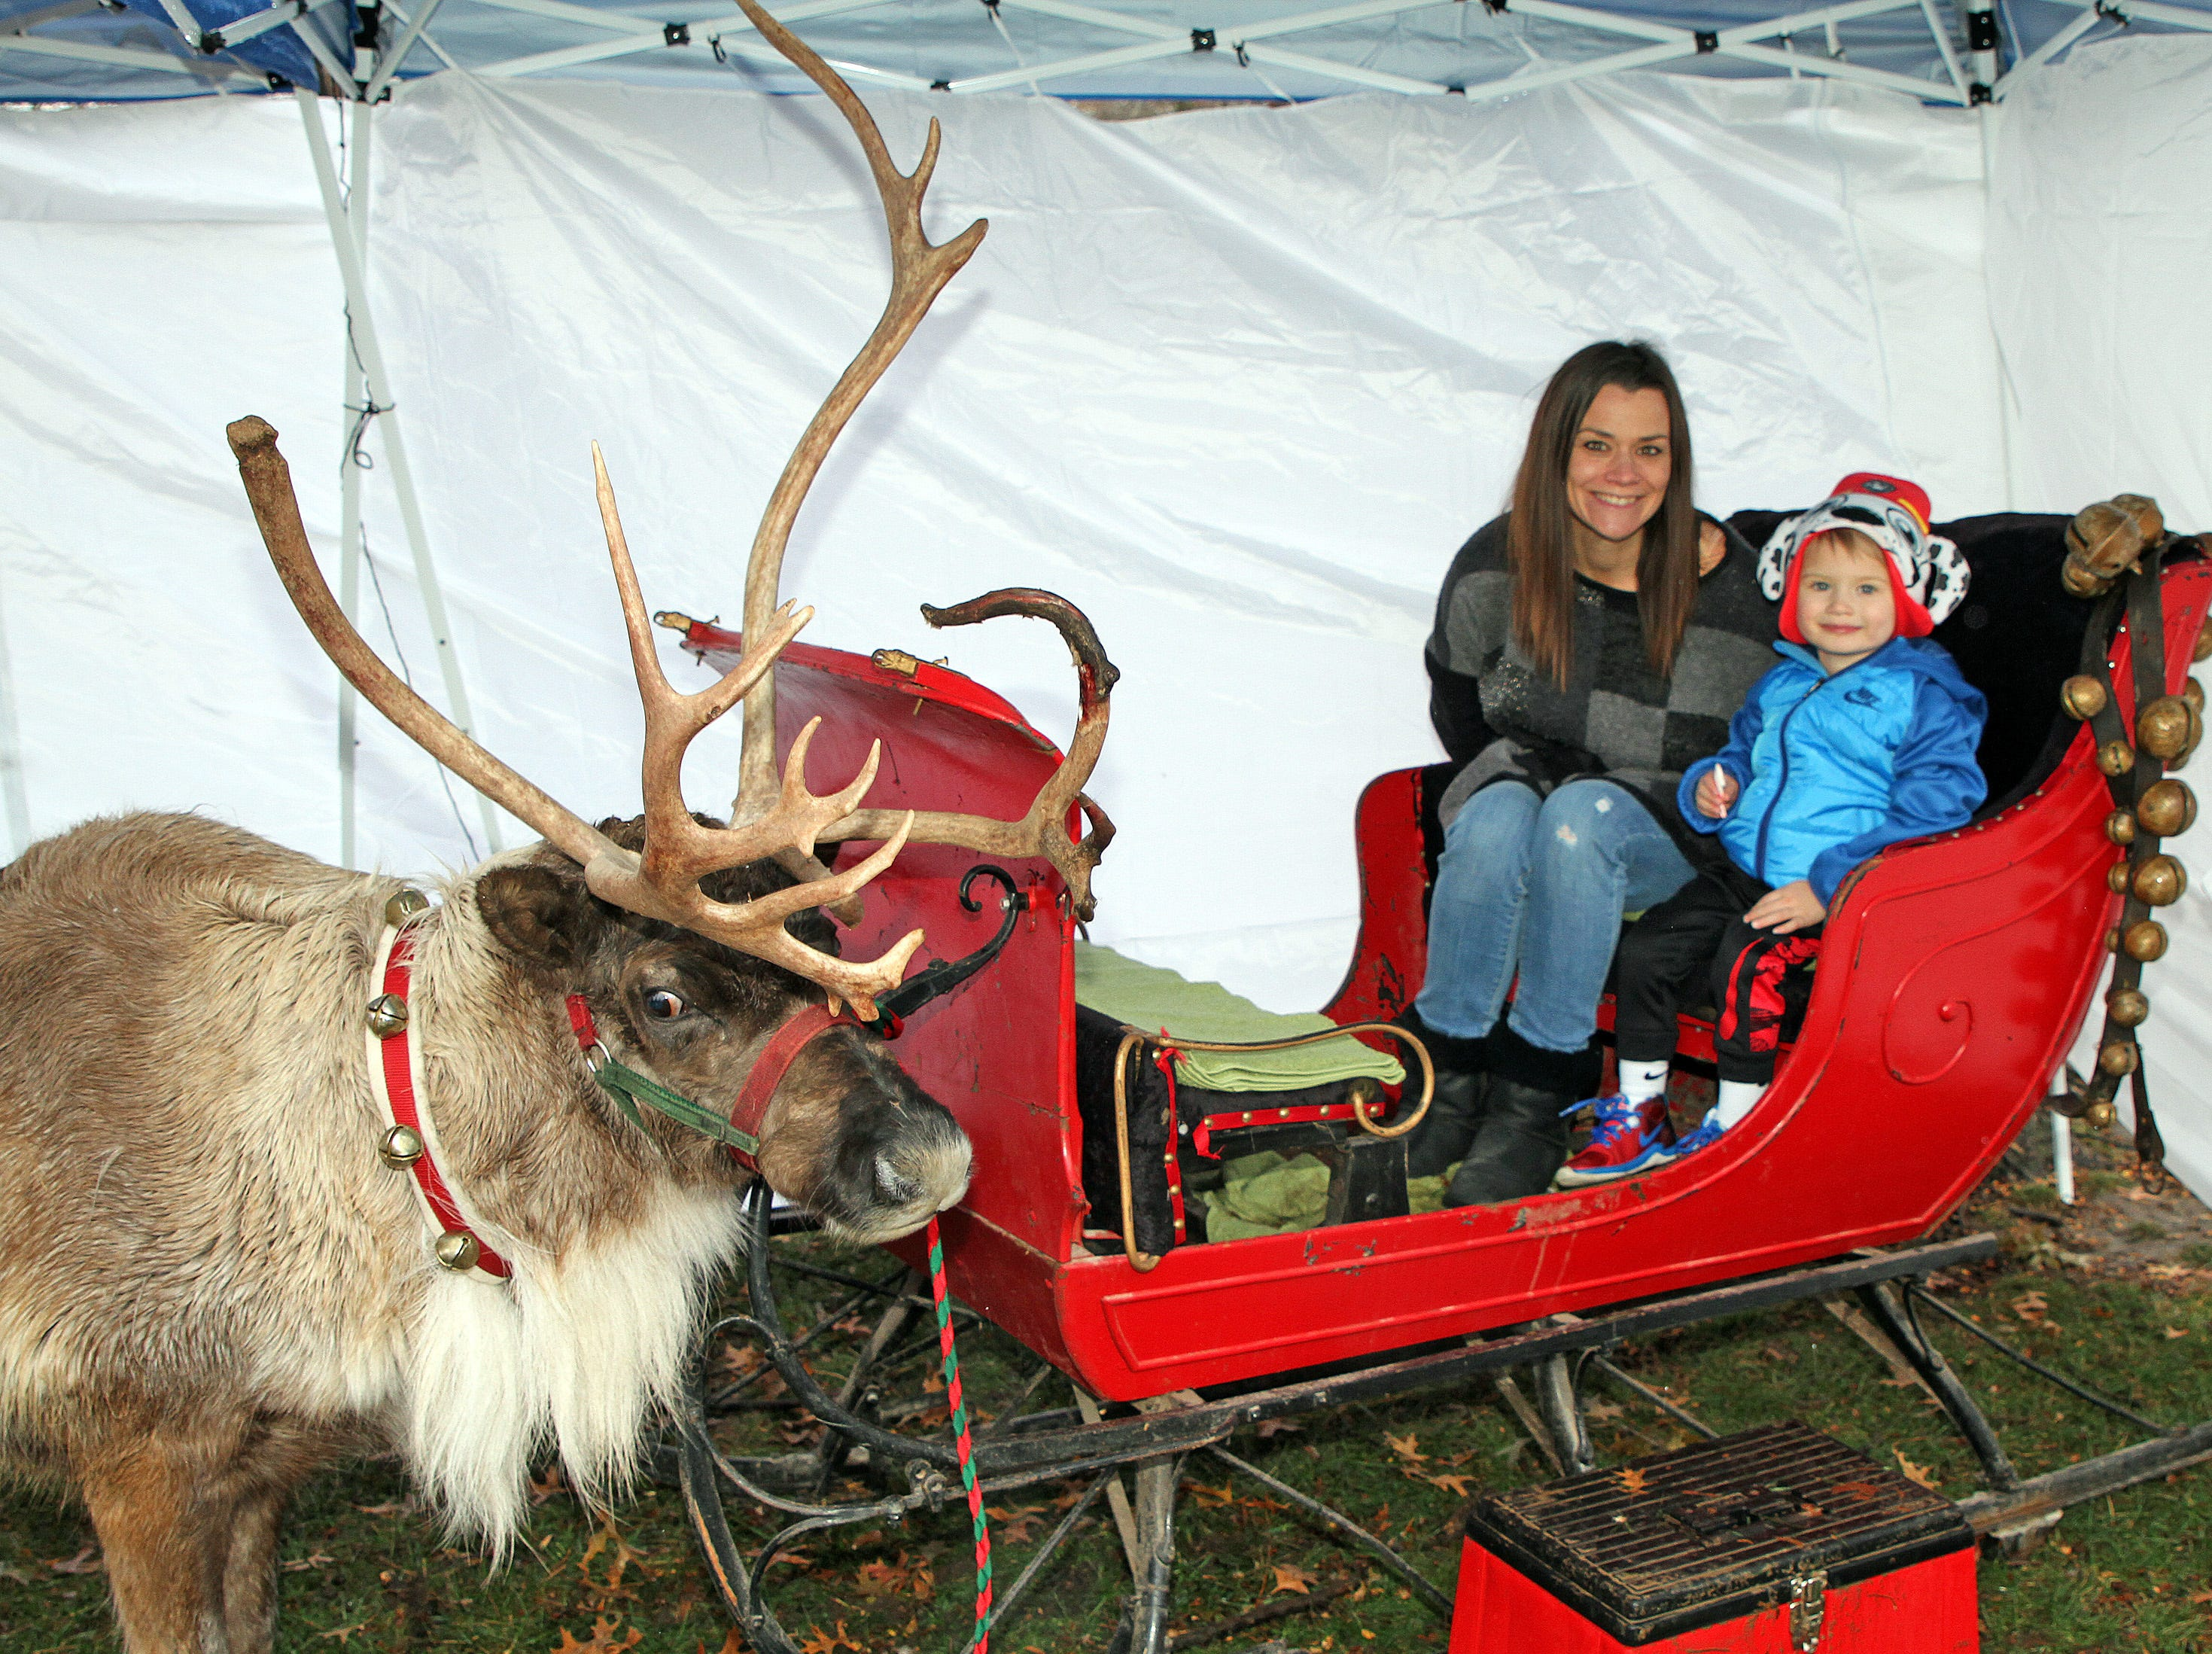 Zayden, 3, and Jennifer Wulkow of Urbandale stop for a picture with Rudy the Reindeer during UCAN's third annual Light Up Urbandale on Sunday, Dec. 2, 2018 at Lions Park in Urbandale. Holiday festivities included a visit from Santa, crafts, goodies, official tree lighting ceremony, live reindeer and entertainment. This event helps raise awareness and support for the Urbandale Community Action Network Holiday Helping Hands Programs for families, kids, teens and seniors in need.